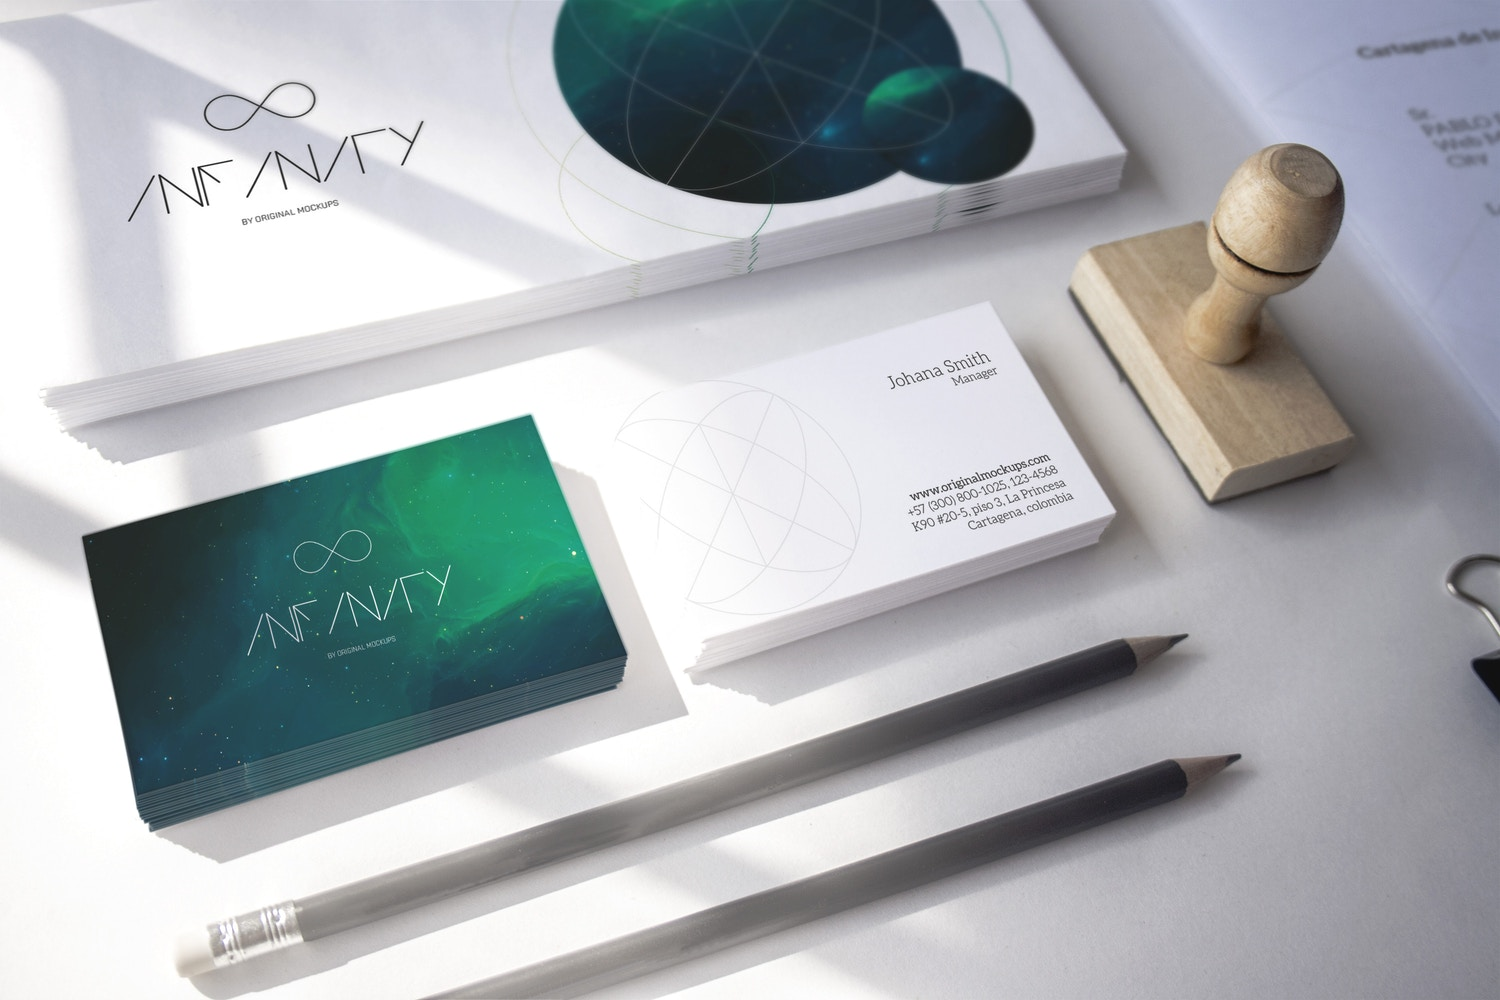 Stationery Mockup 8 by Original Mockups on Original Mockups